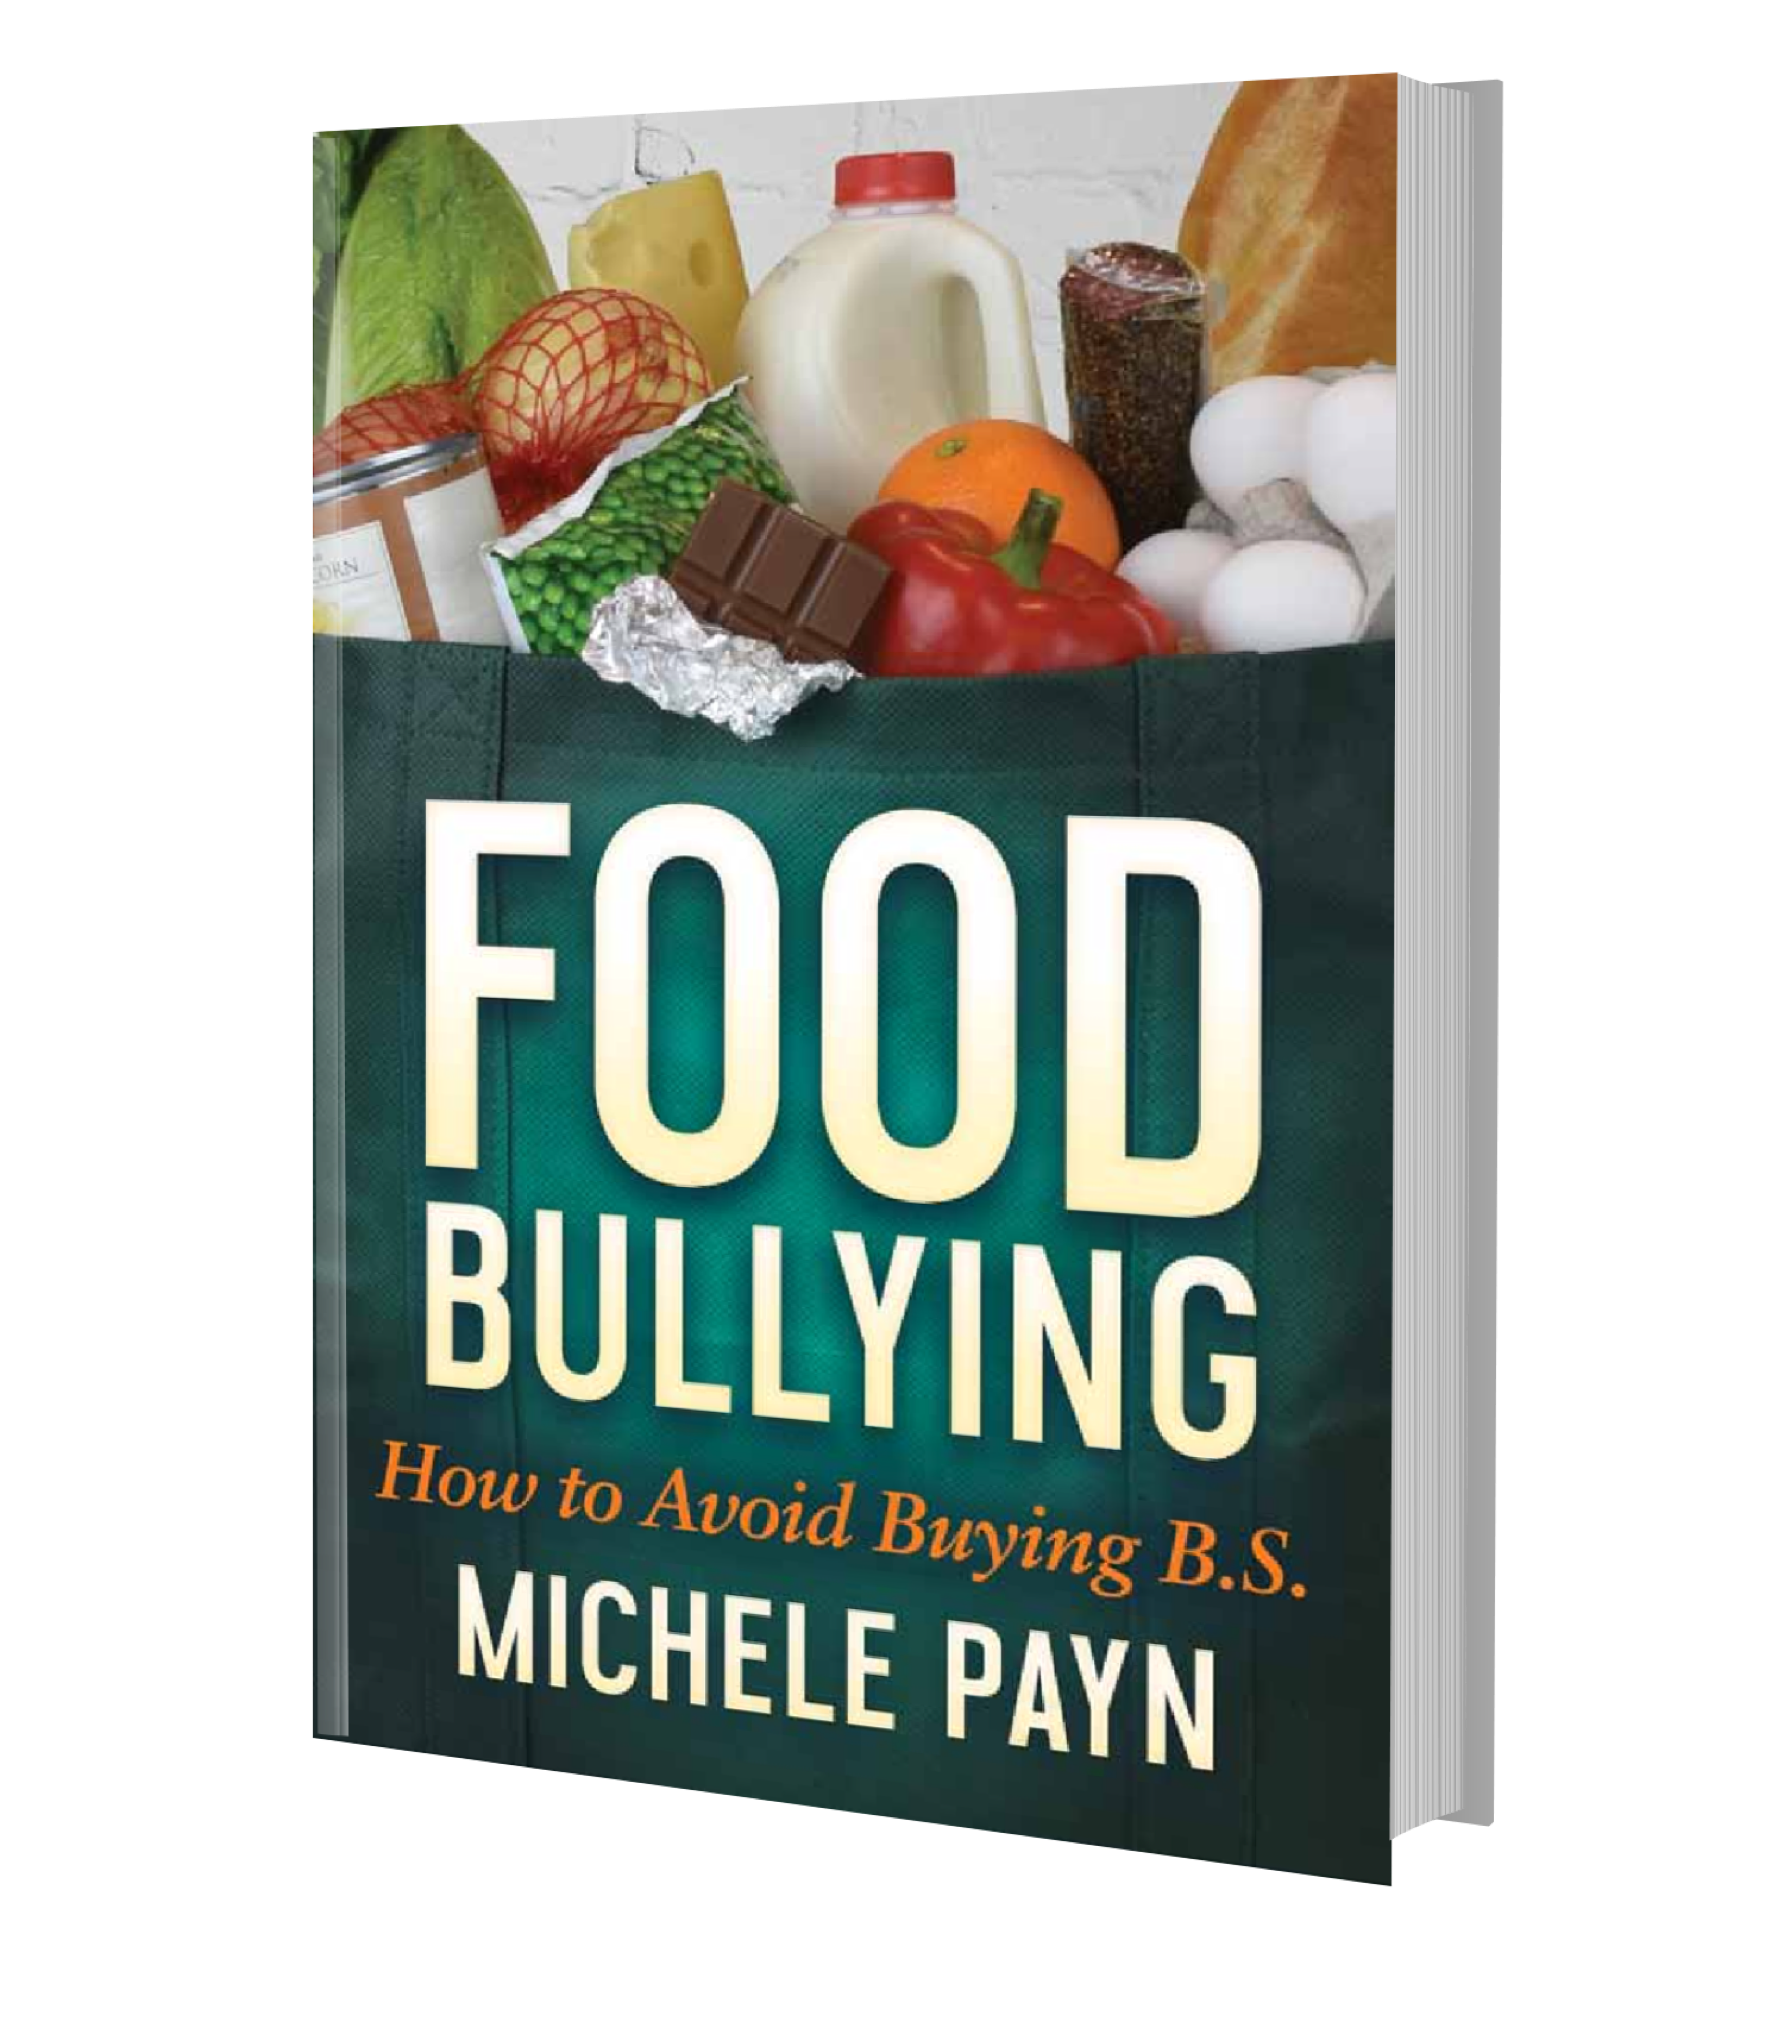 Food Bullying Michele Payn